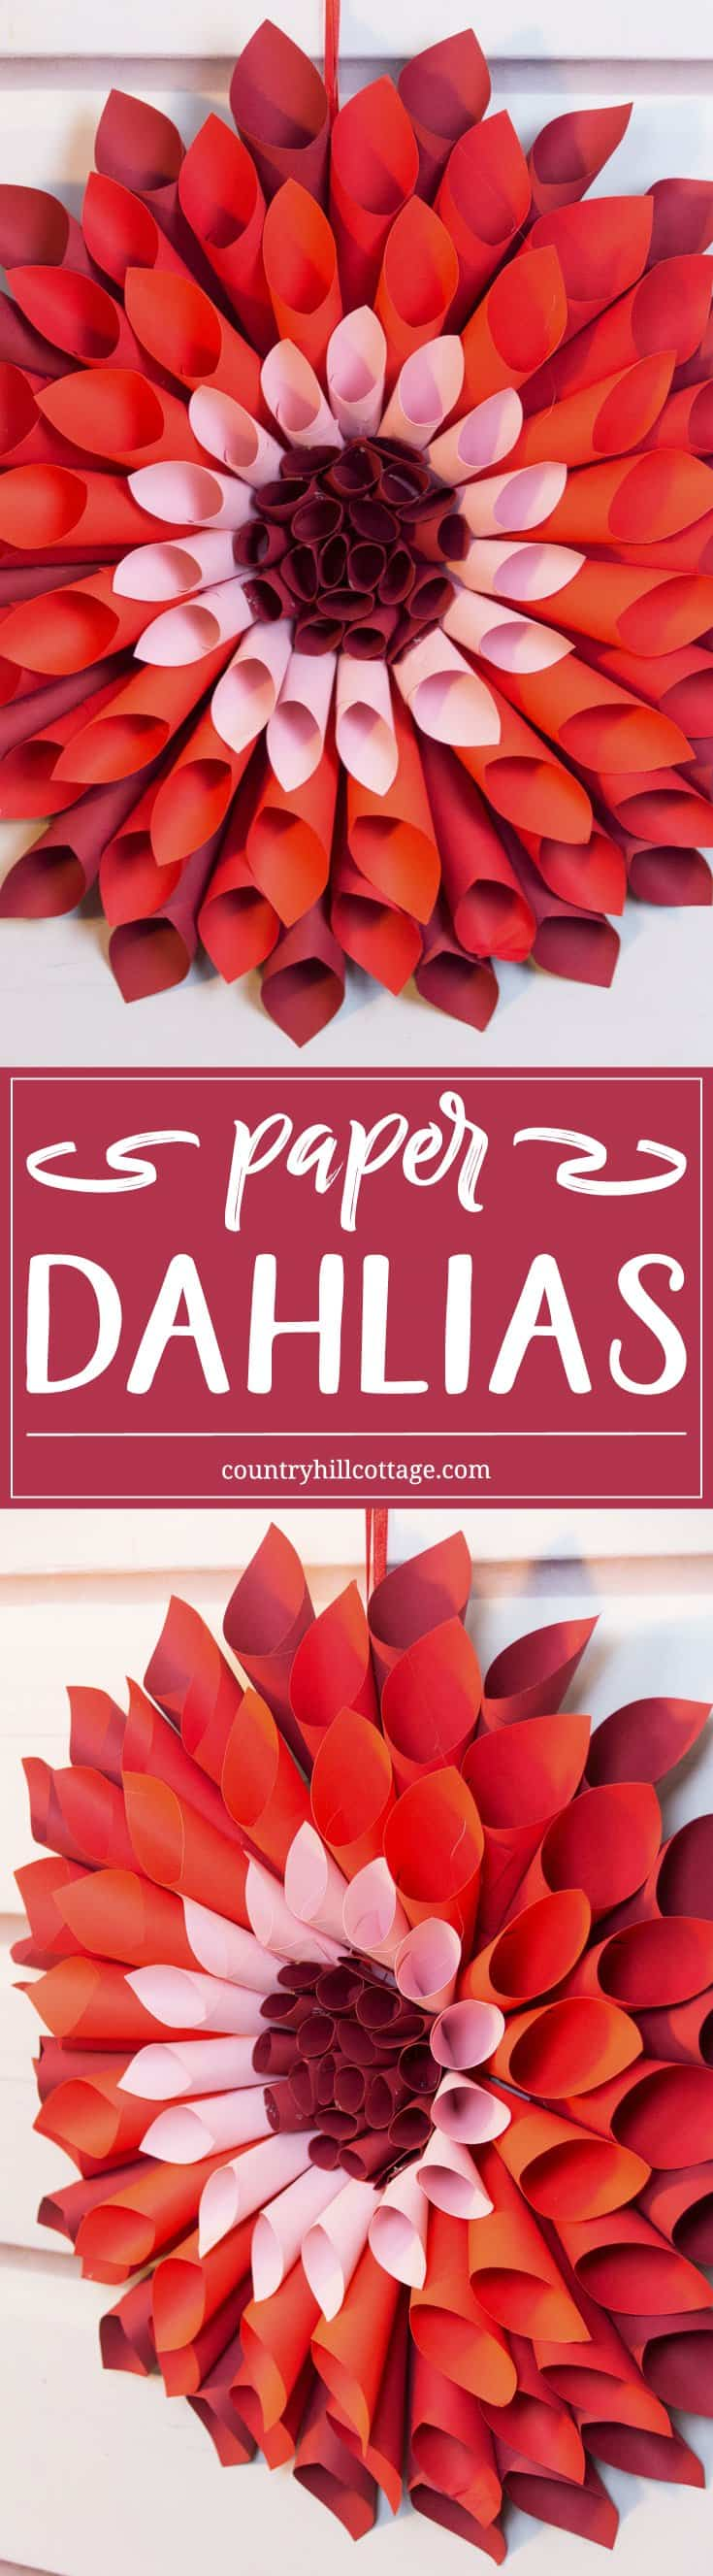 Let's craft giant paper dahlias and use our free printable template to make crafting easier! #papercrafts |countryhillcottage.com